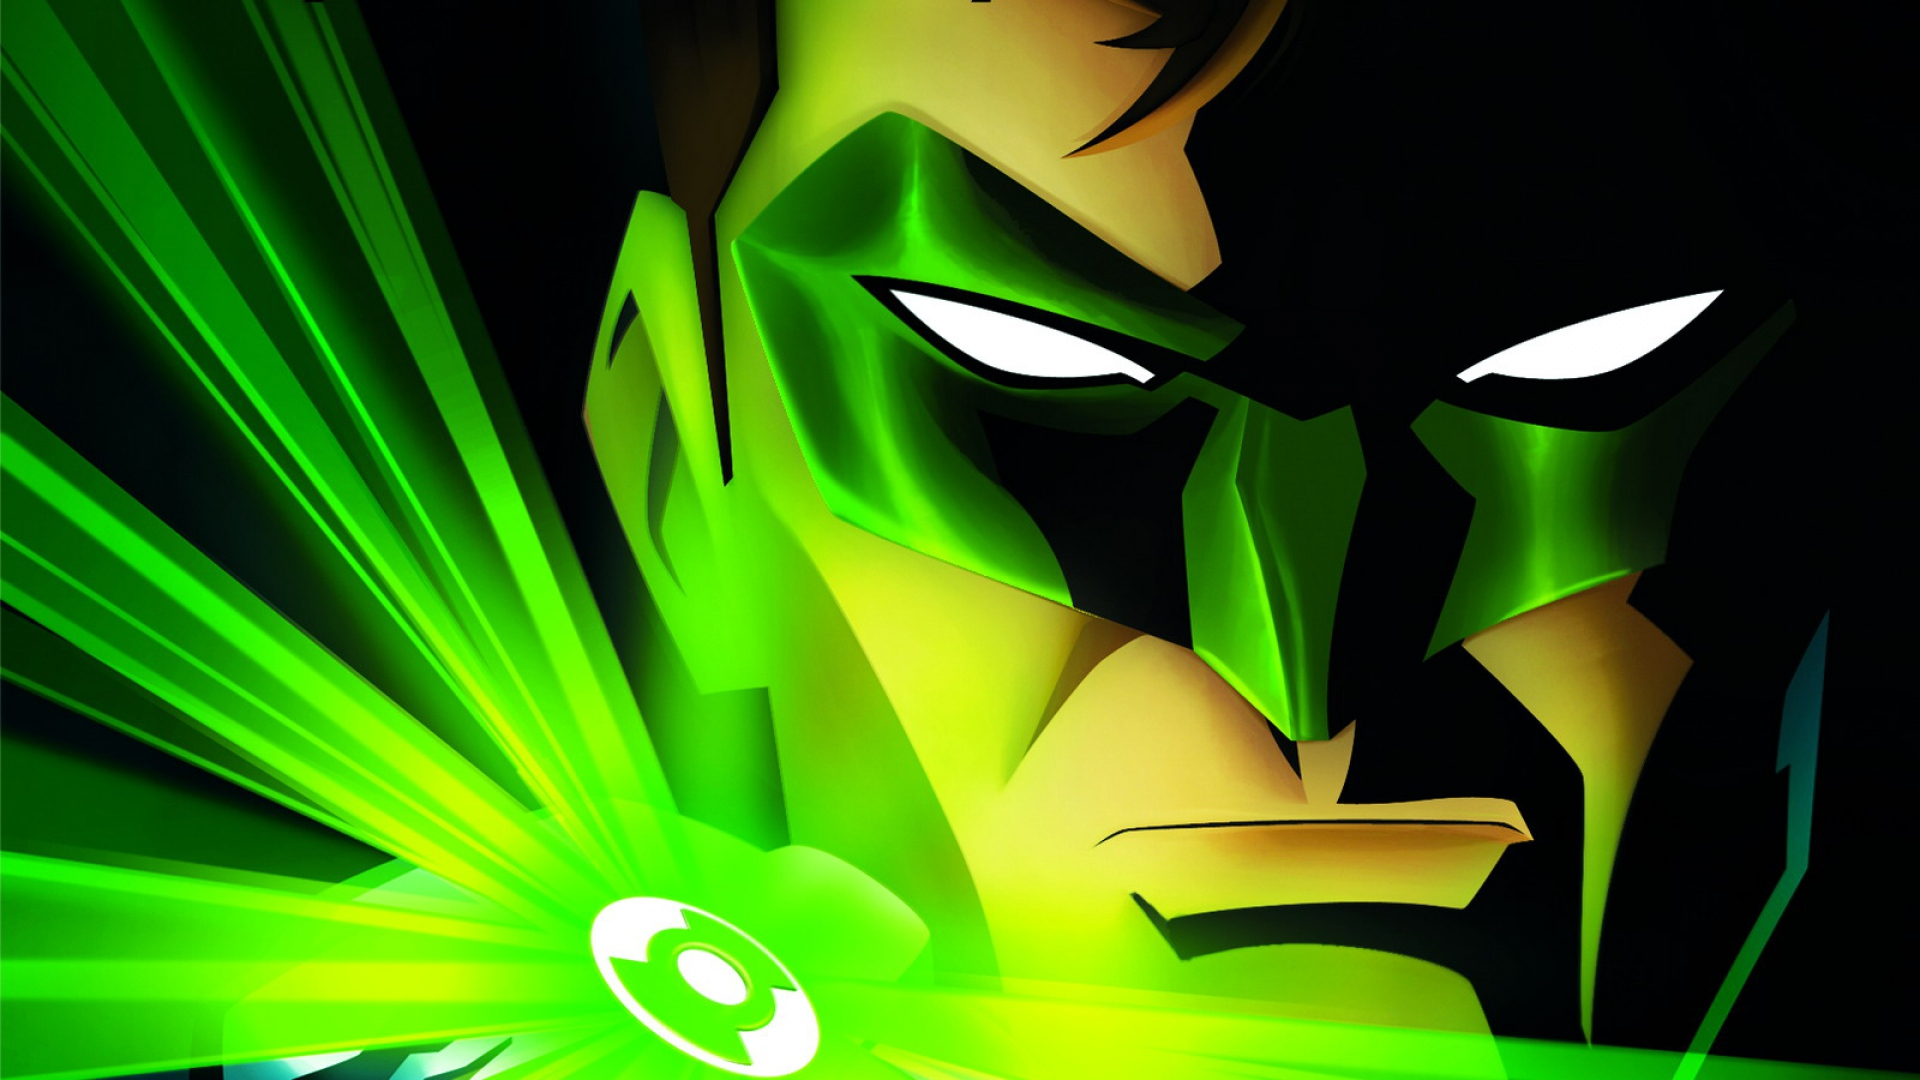 1920x1080 green lantern dc comics laptop full hd 1080p hd 4k green lantern dc comics wideg voltagebd Images